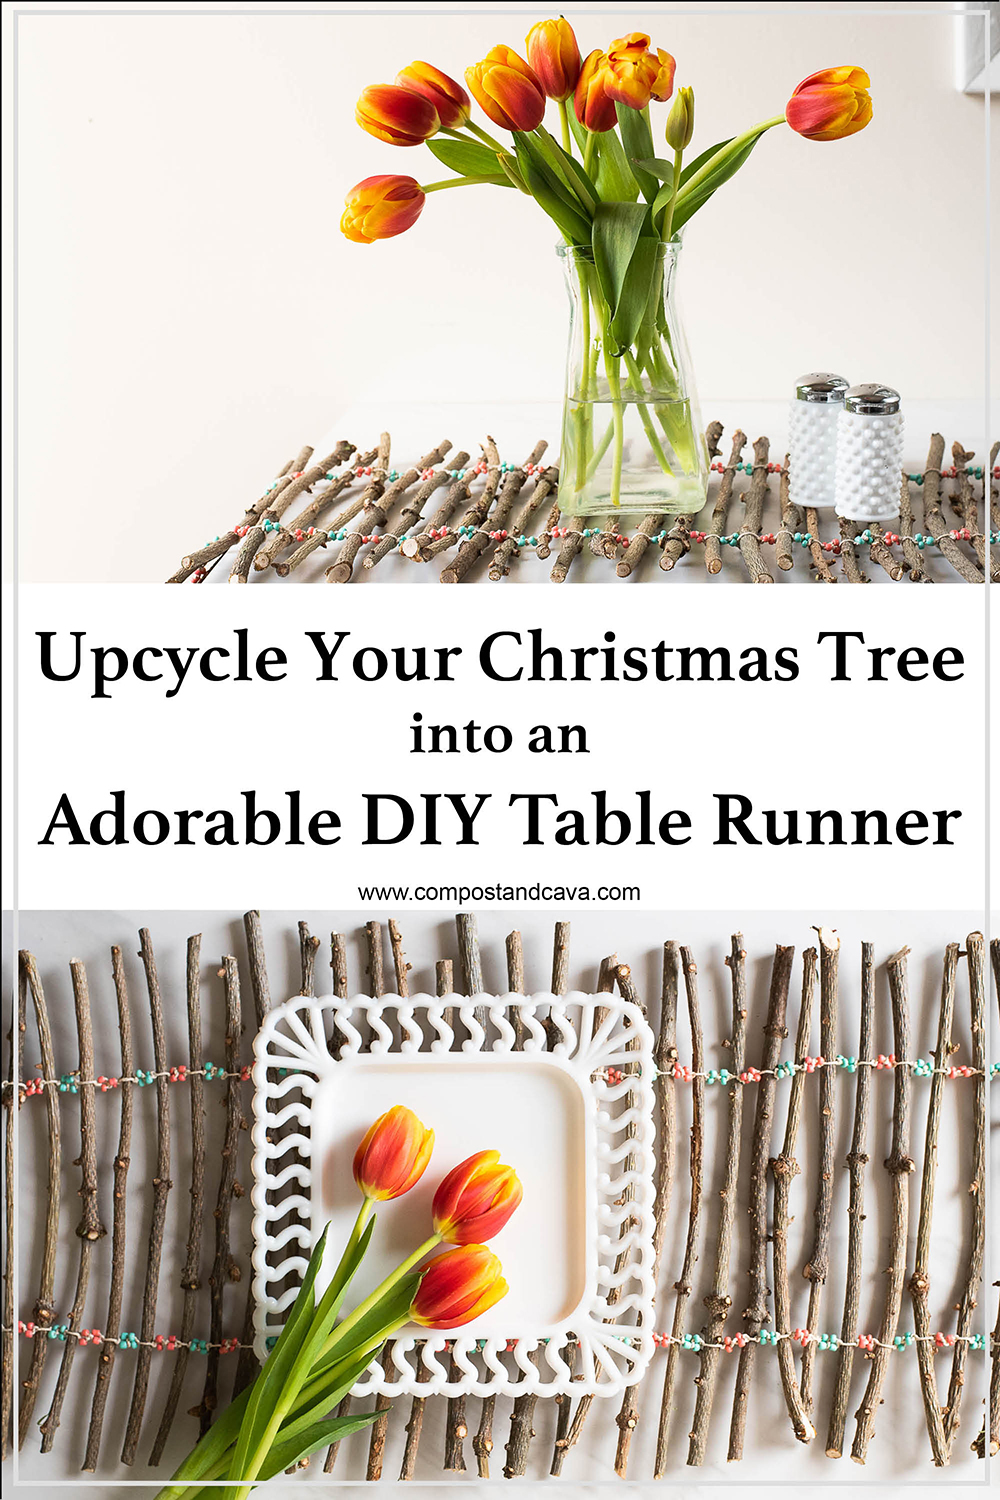 How to Upcycle Your Christmas Tree into an Adorable Table Runner for Zero Waste Living